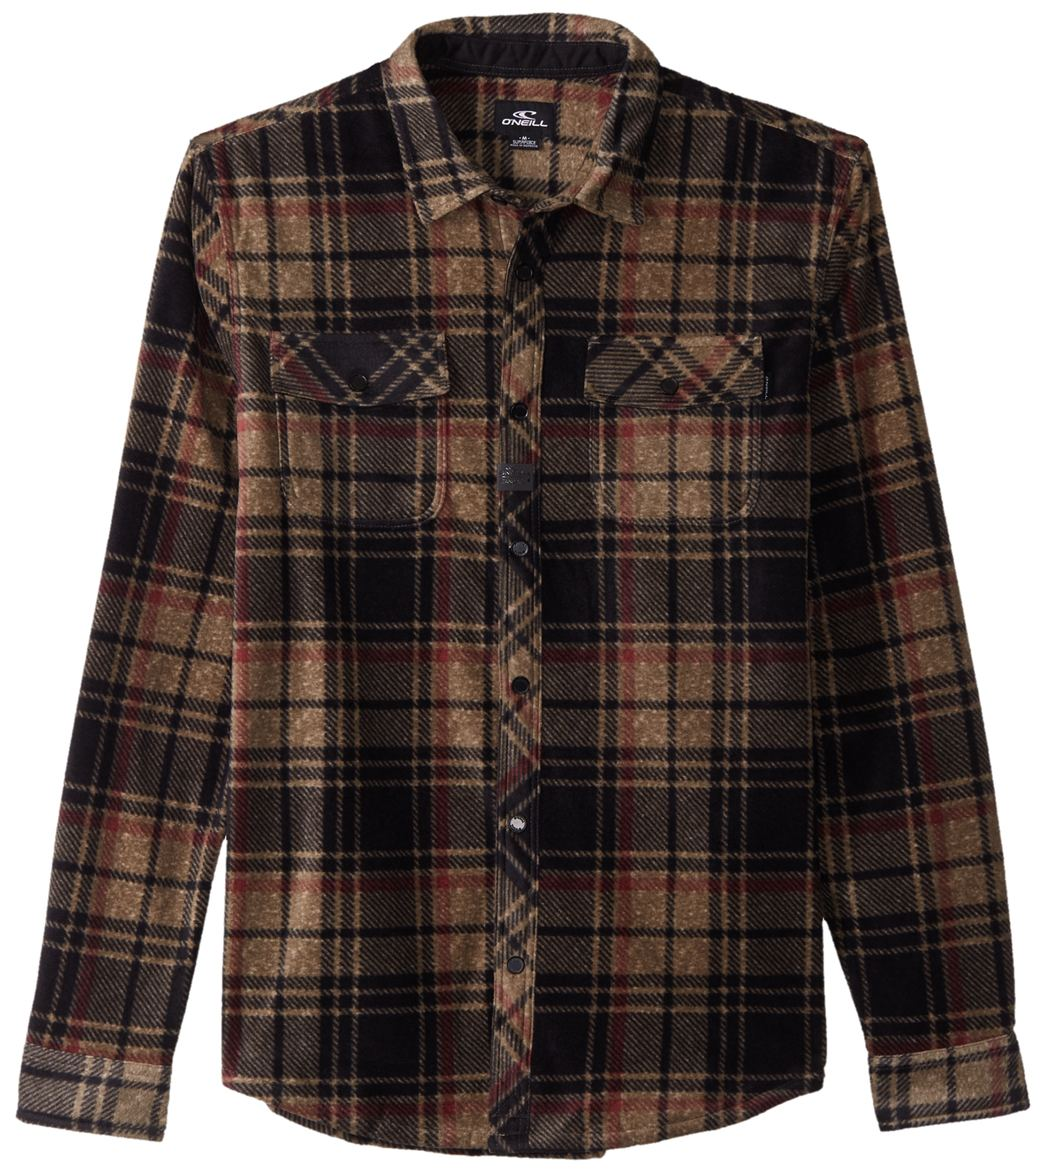 9a46aa2f O'Neill Men's Long Sleeve Glacier Plaid Fleece Shirt at SwimOutlet.com -  Free Shipping